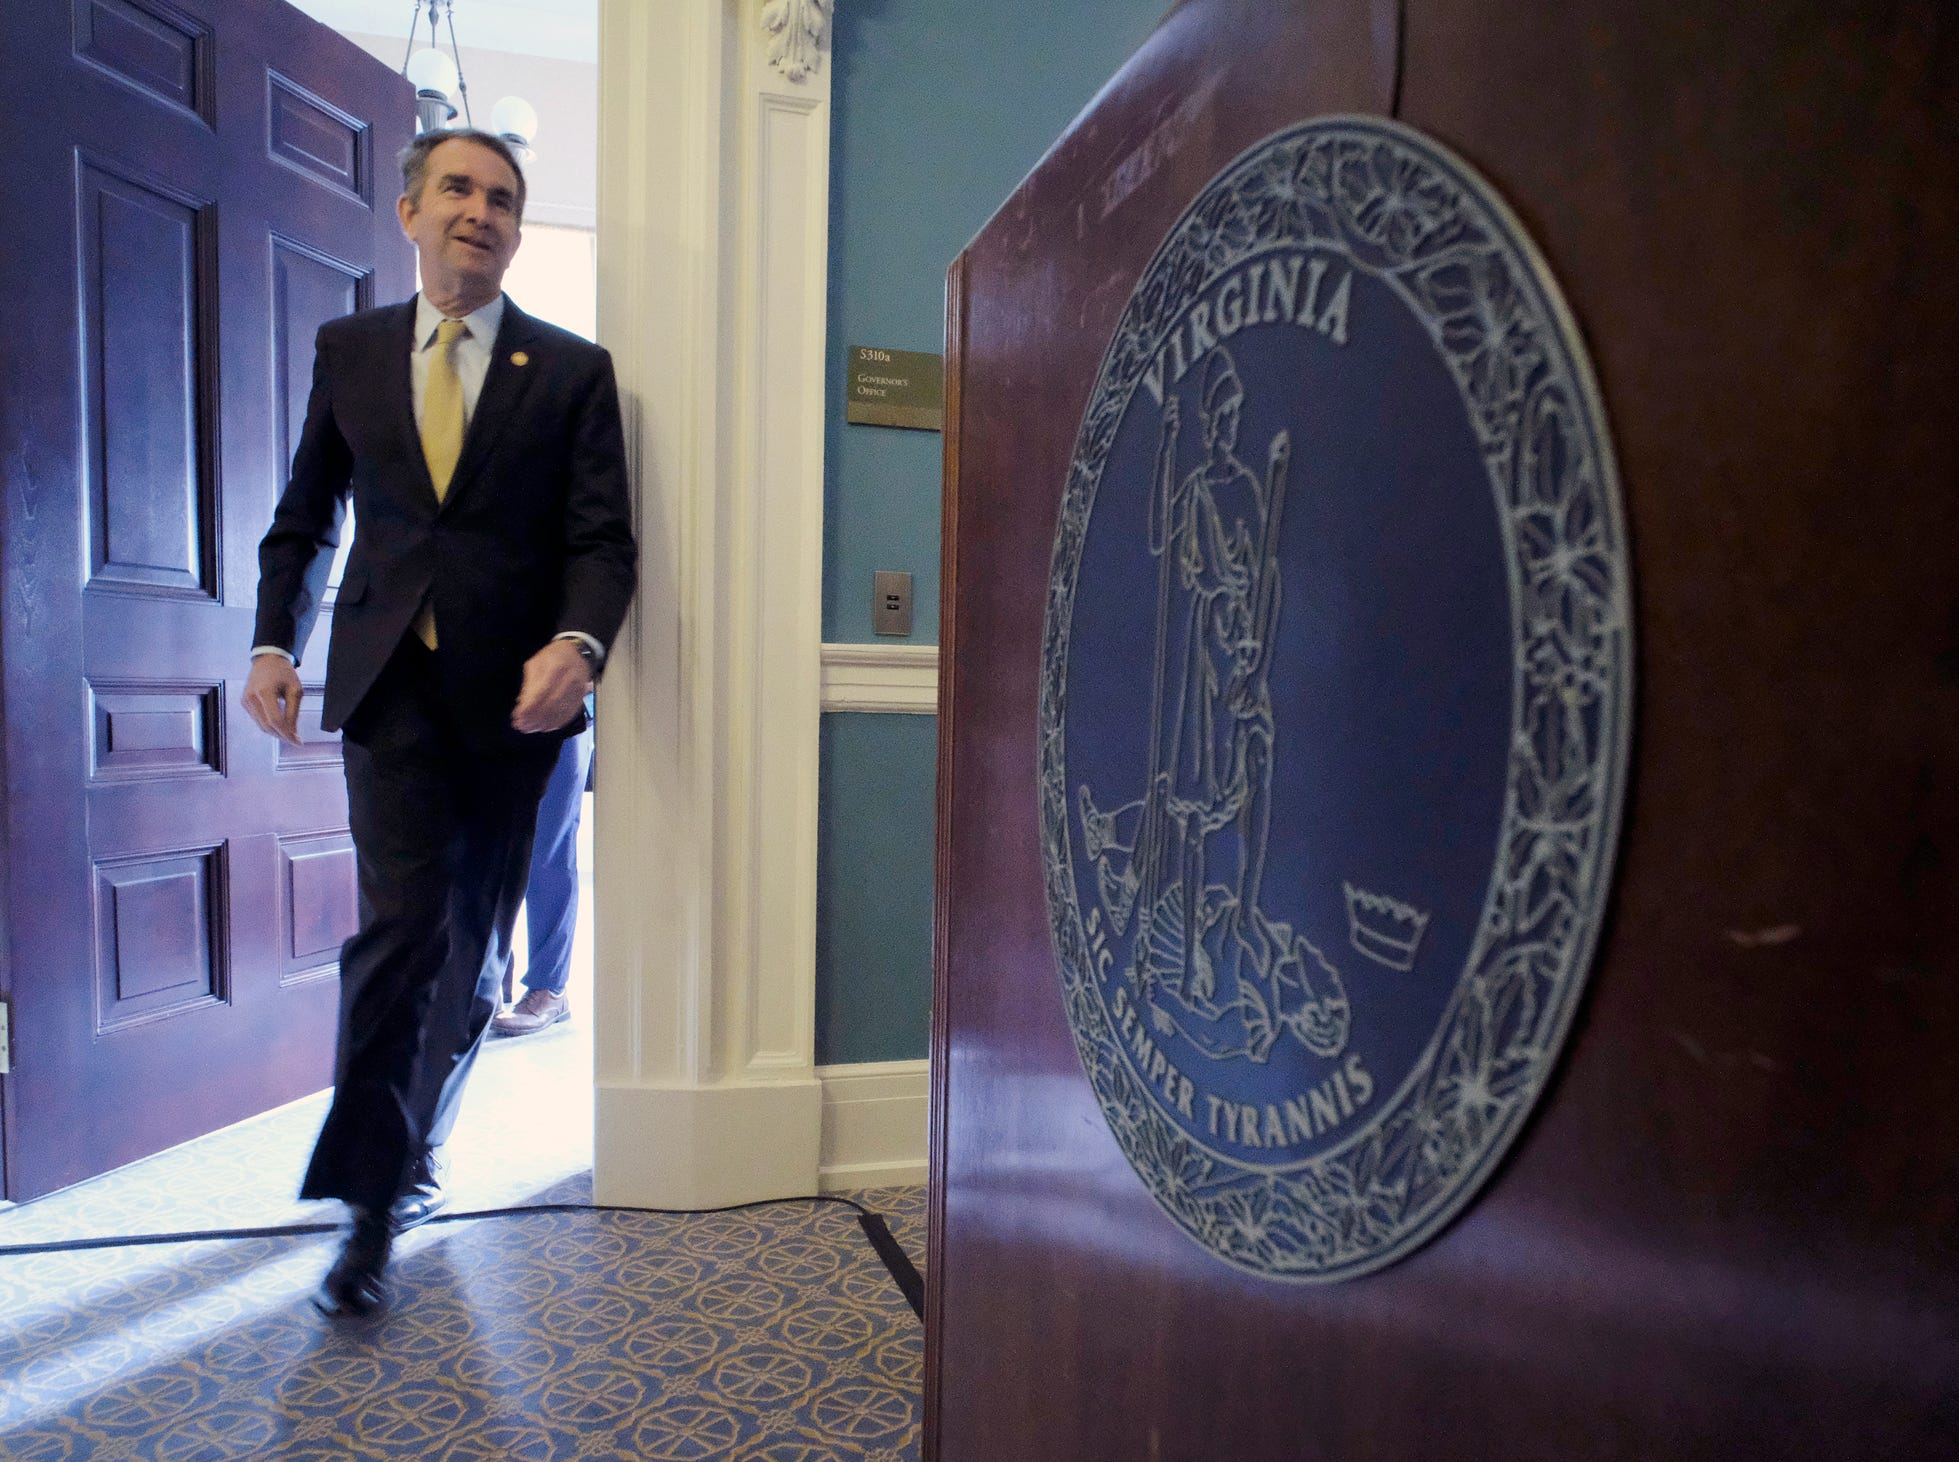 Virginia Governor Ralph Northam enters his conference room and heads for the podium, right, where he previewed several of his legislative proposals relating to elections during a media event at the State Capitol in Richmond, Va., Monday, Jan. 7, 2019.